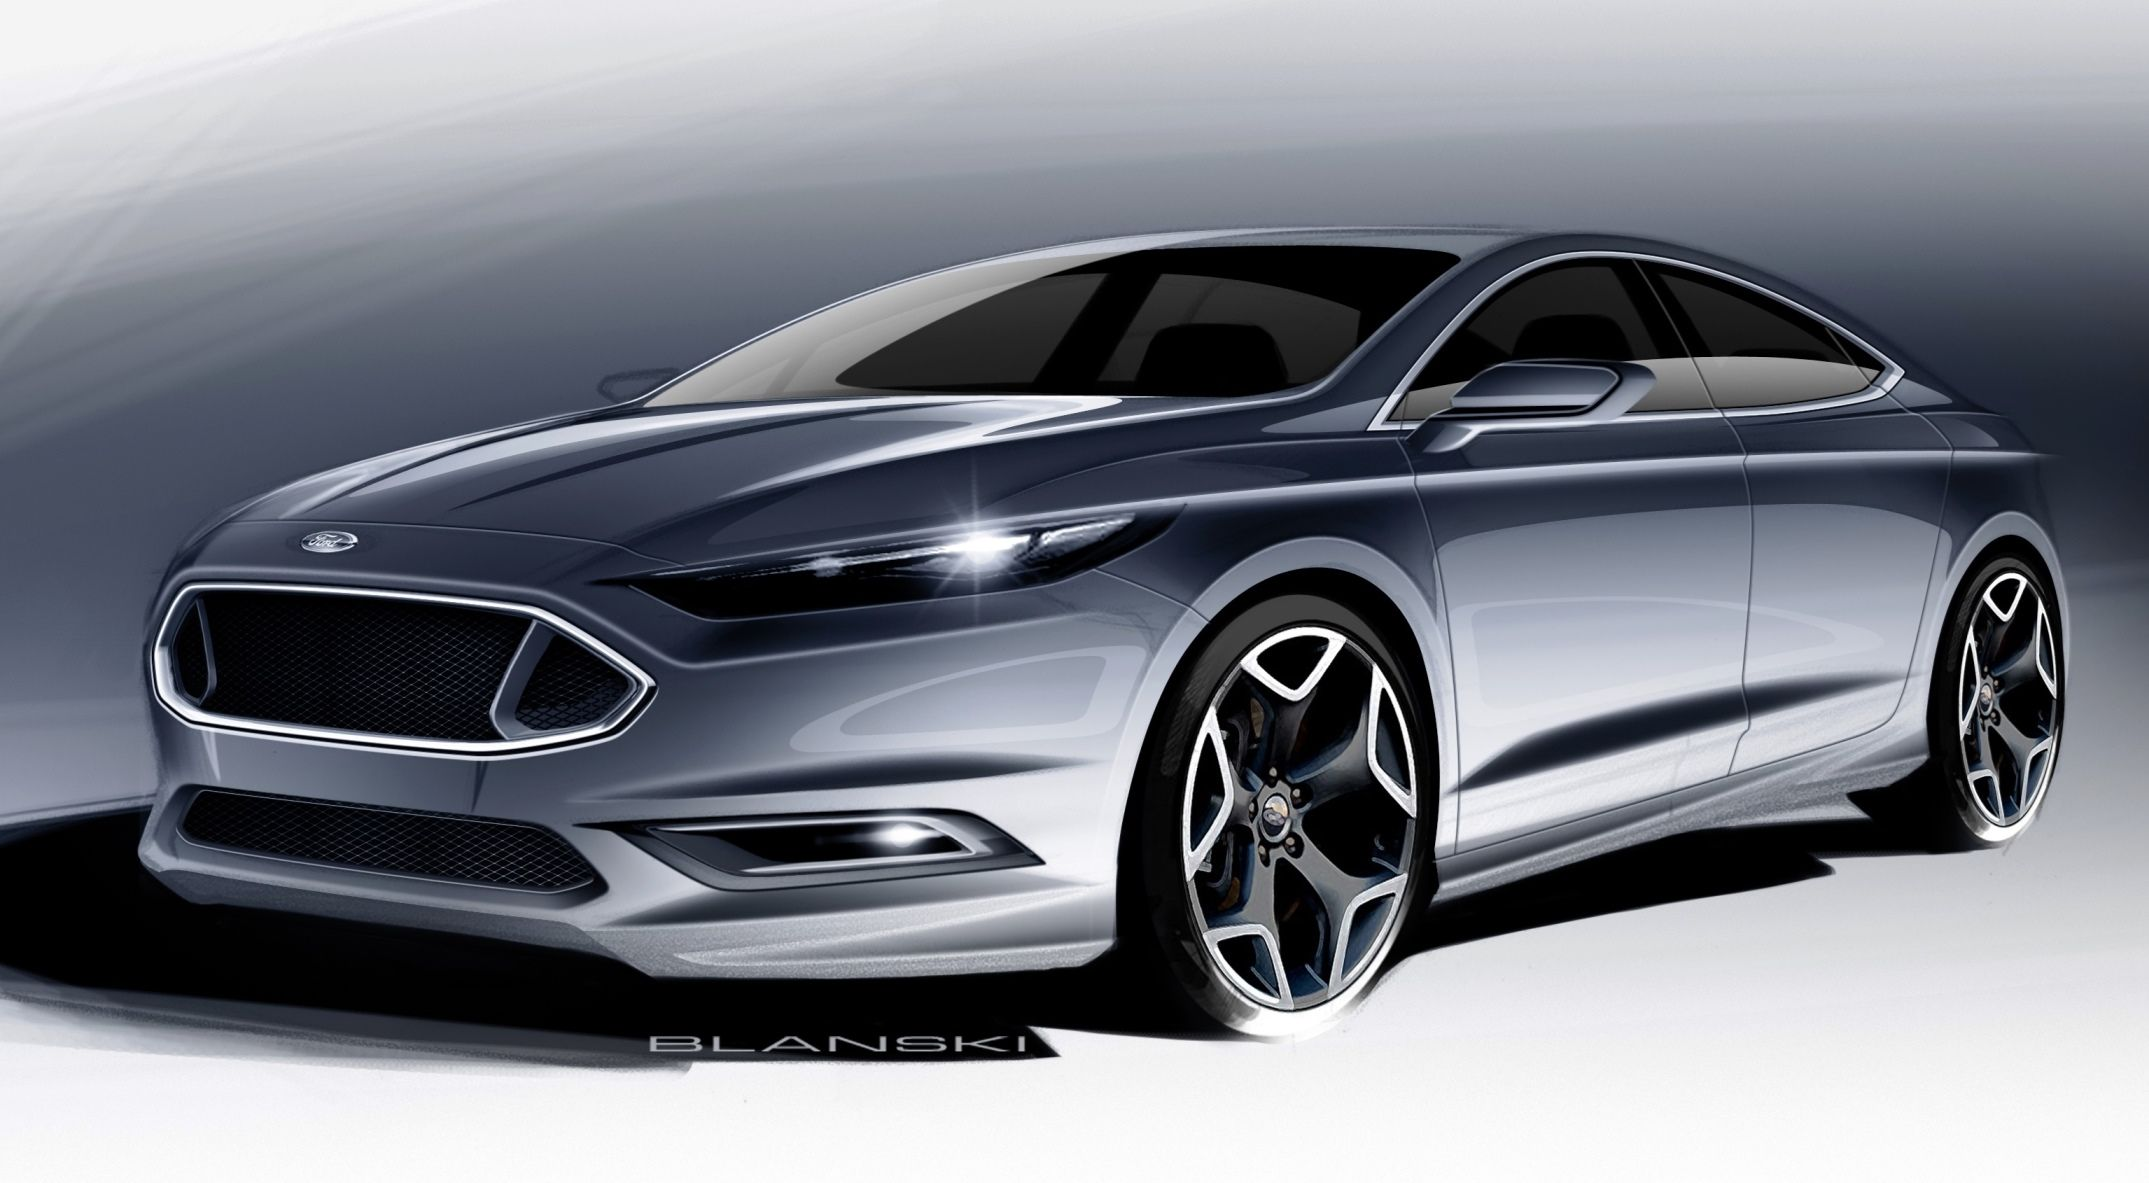 2016 Ford Taurus Limited Wallpaper Ford Taurus Ford Fusion